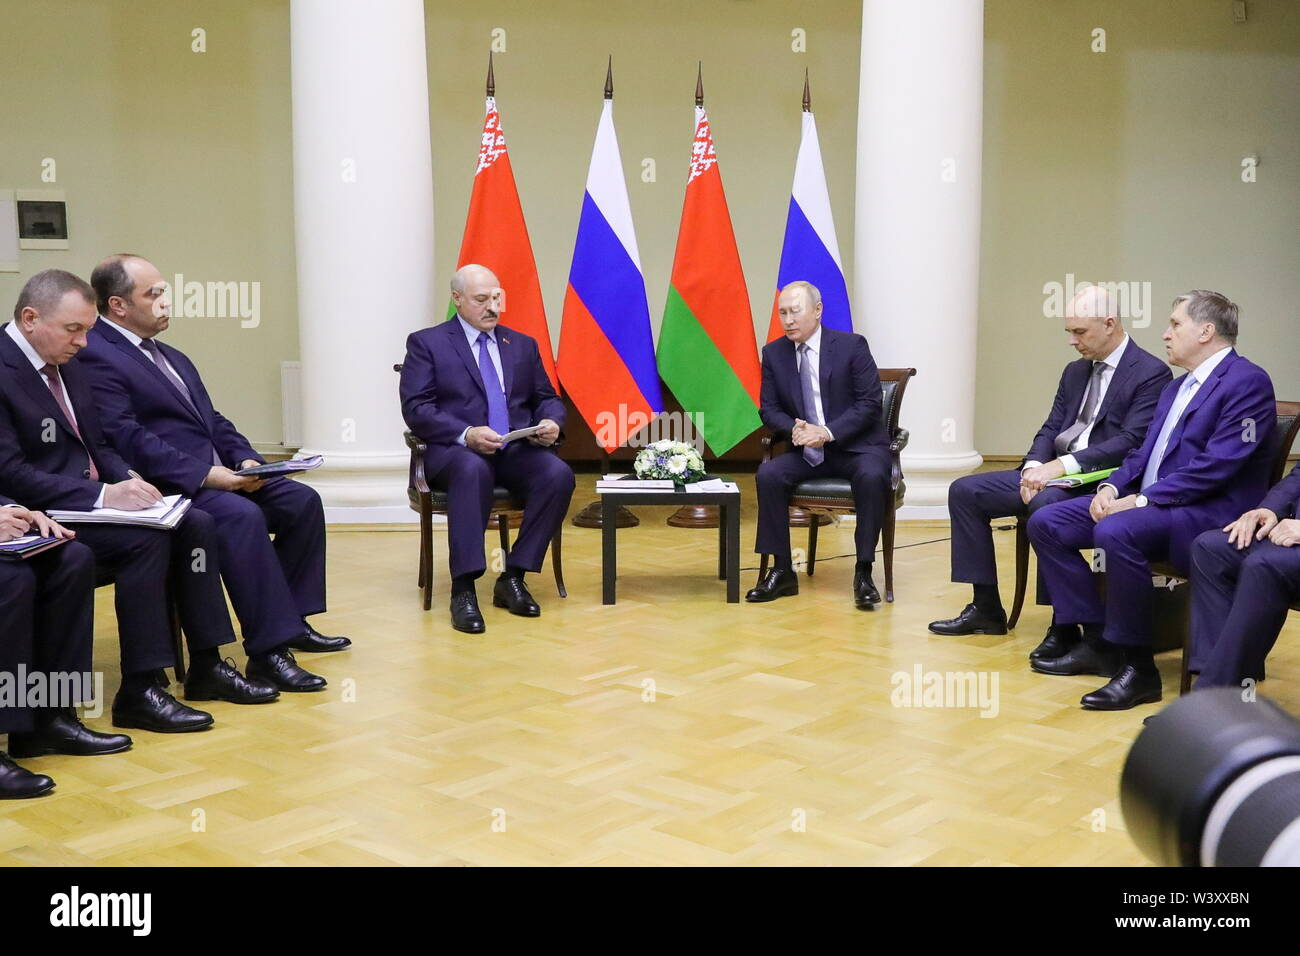 St Petersburg, Russia. 18th July, 2019. ST PETERSBURG, RUSSIA - JULY 18, 2019: Belarus' President Alexander Lukashenko and Russia's President Vladimir Putin (L-R center) shake hands during a meeting at Tauride Palace. Mikhail Klimentyev/Russian Presidential Press and Information Office/TASS Credit: ITAR-TASS News Agency/Alamy Live News - Stock Image